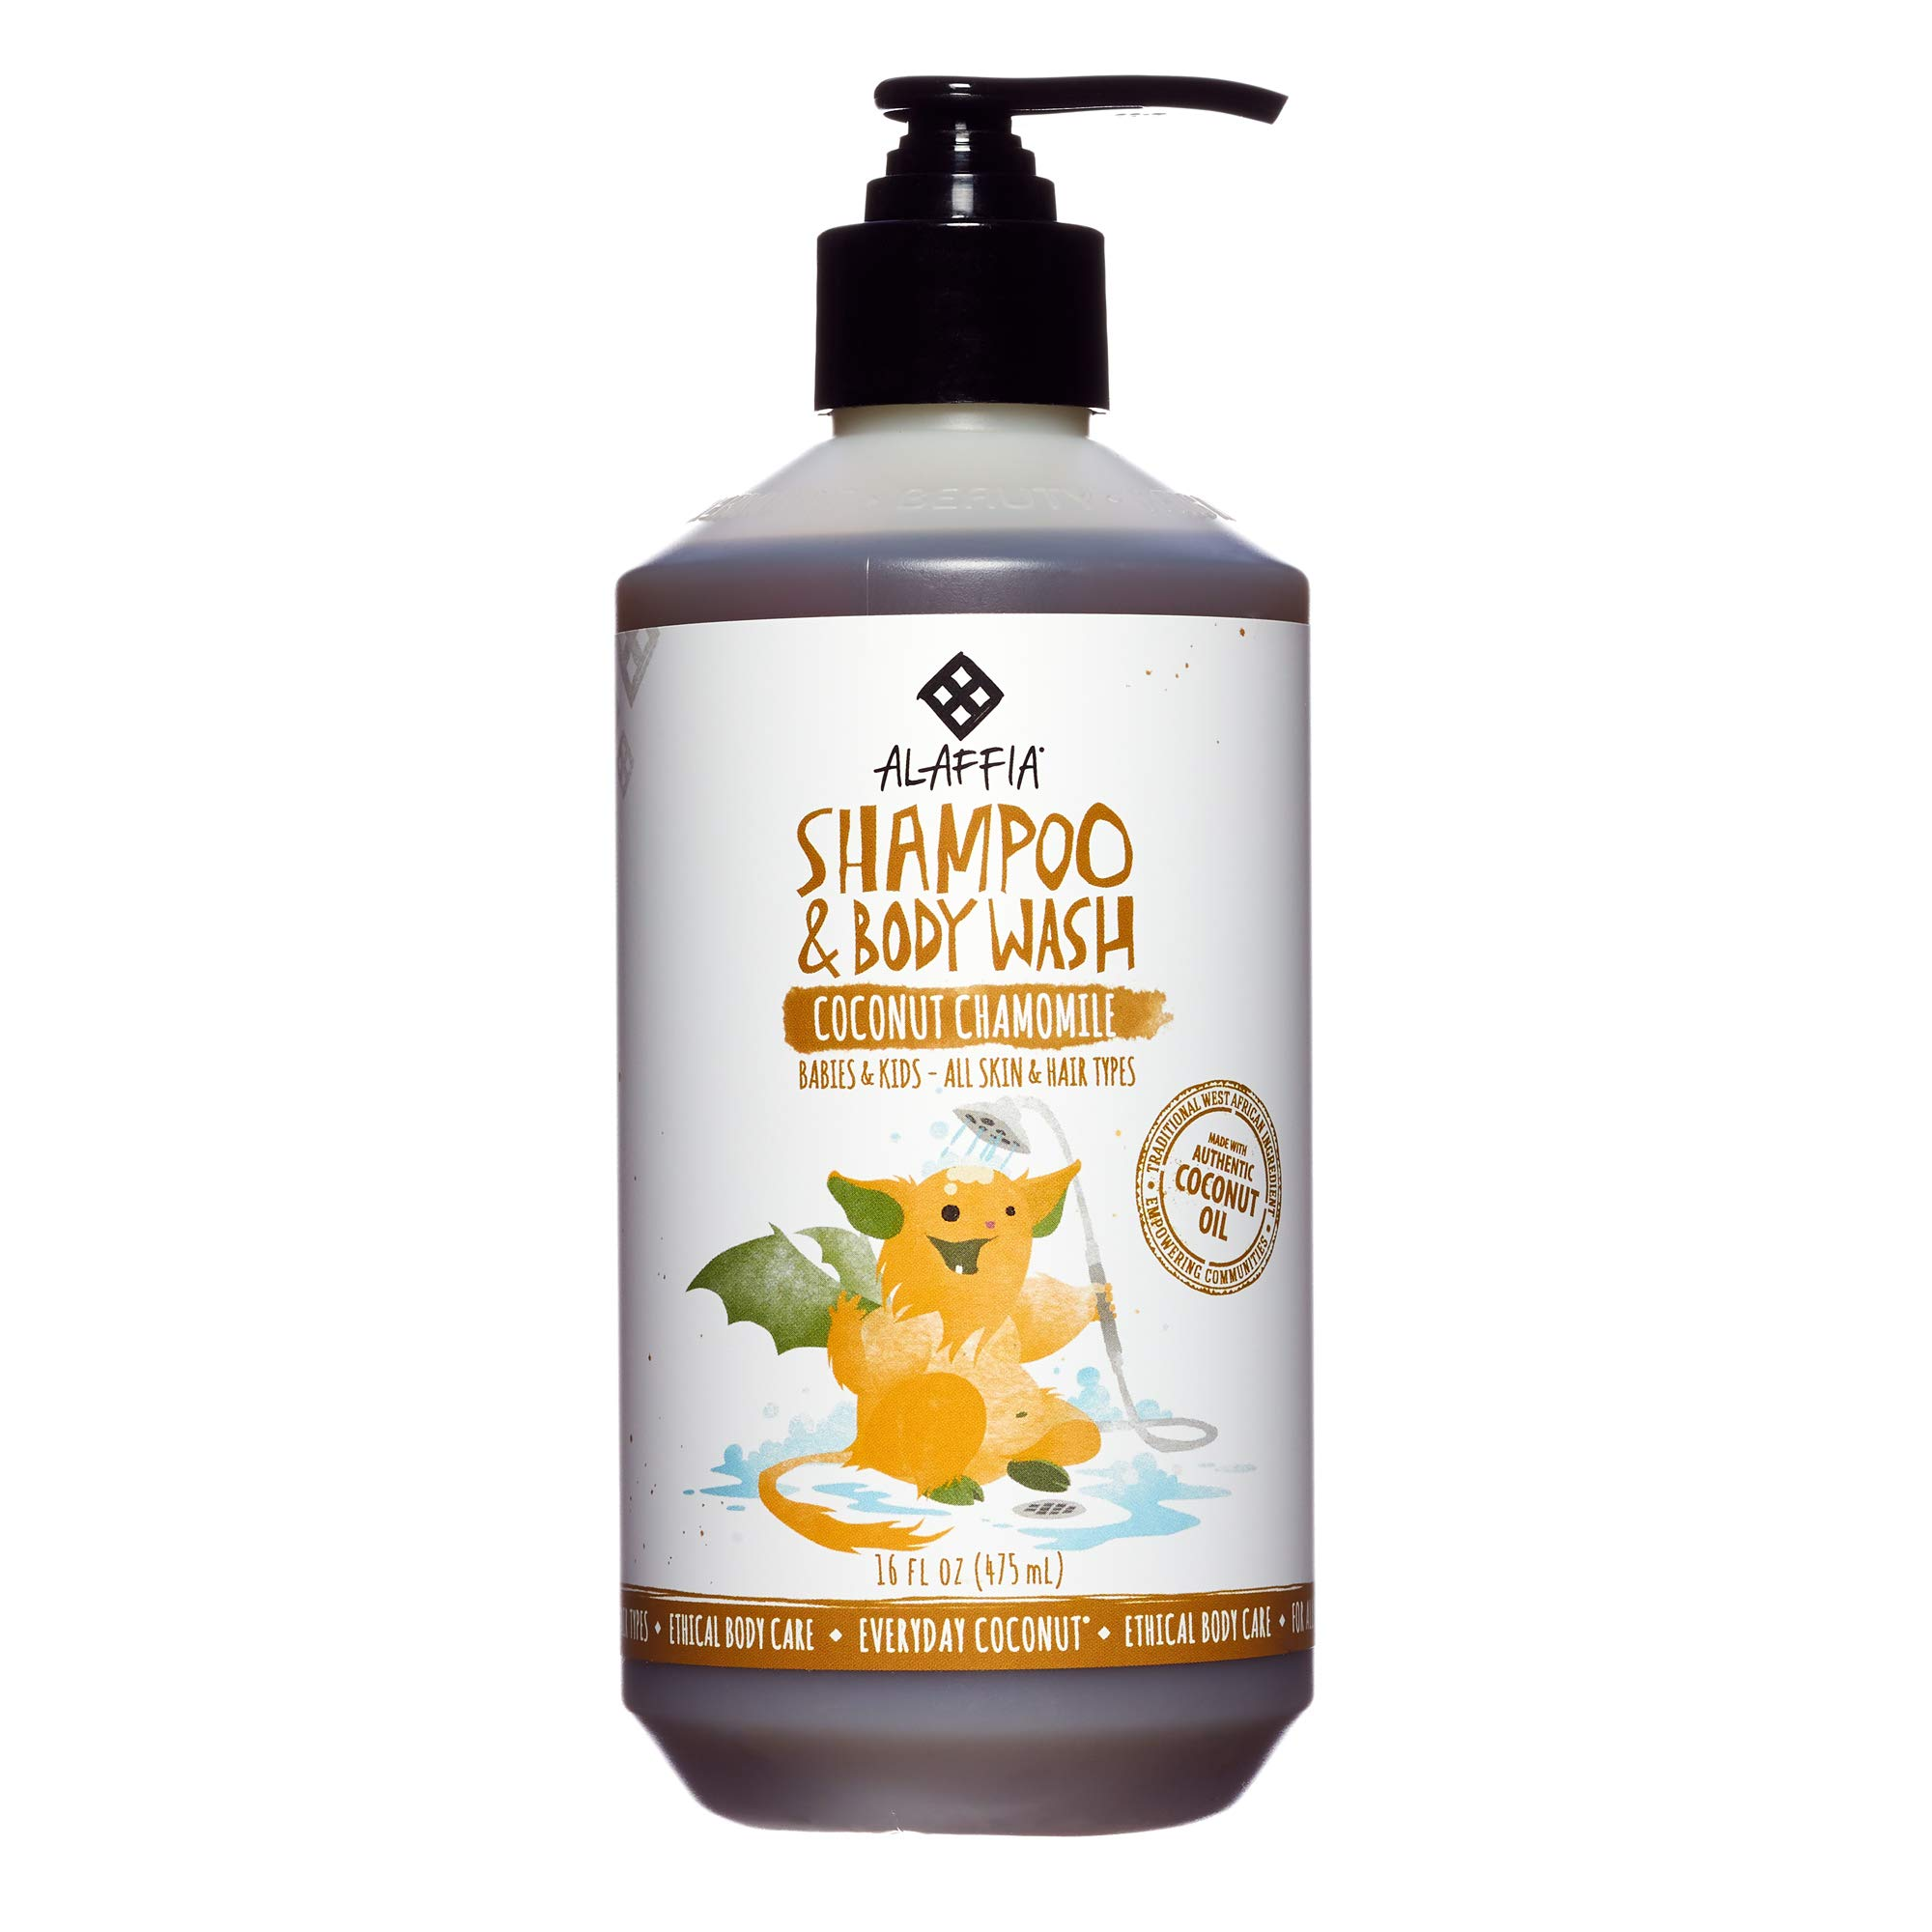 Alaffia - Everyday Coconut Shampoo and Body Wash, Babies and Kids, Gentle and Non-Irritating Support for Soft Hair and Skin with Yarrow and Chamomile, Fair Trade, Coconut Chamomile, 16 Ounces